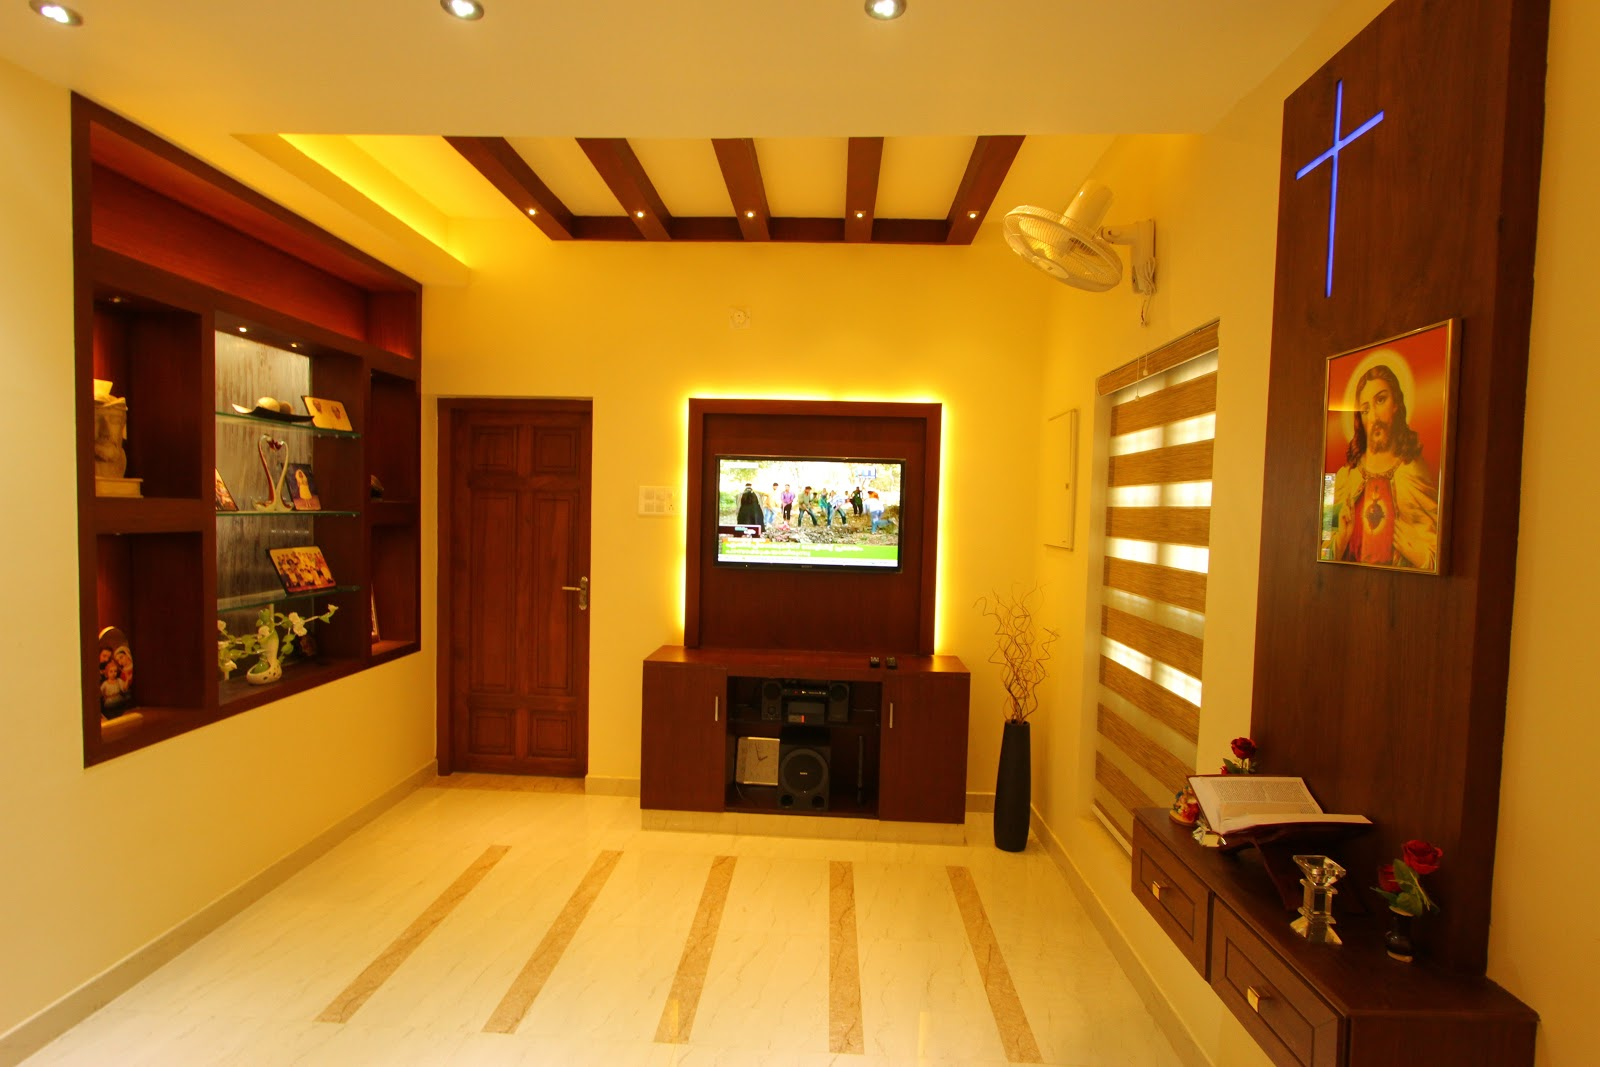 Shilpakala interiors award winning home interior design for Award winning house designs in india